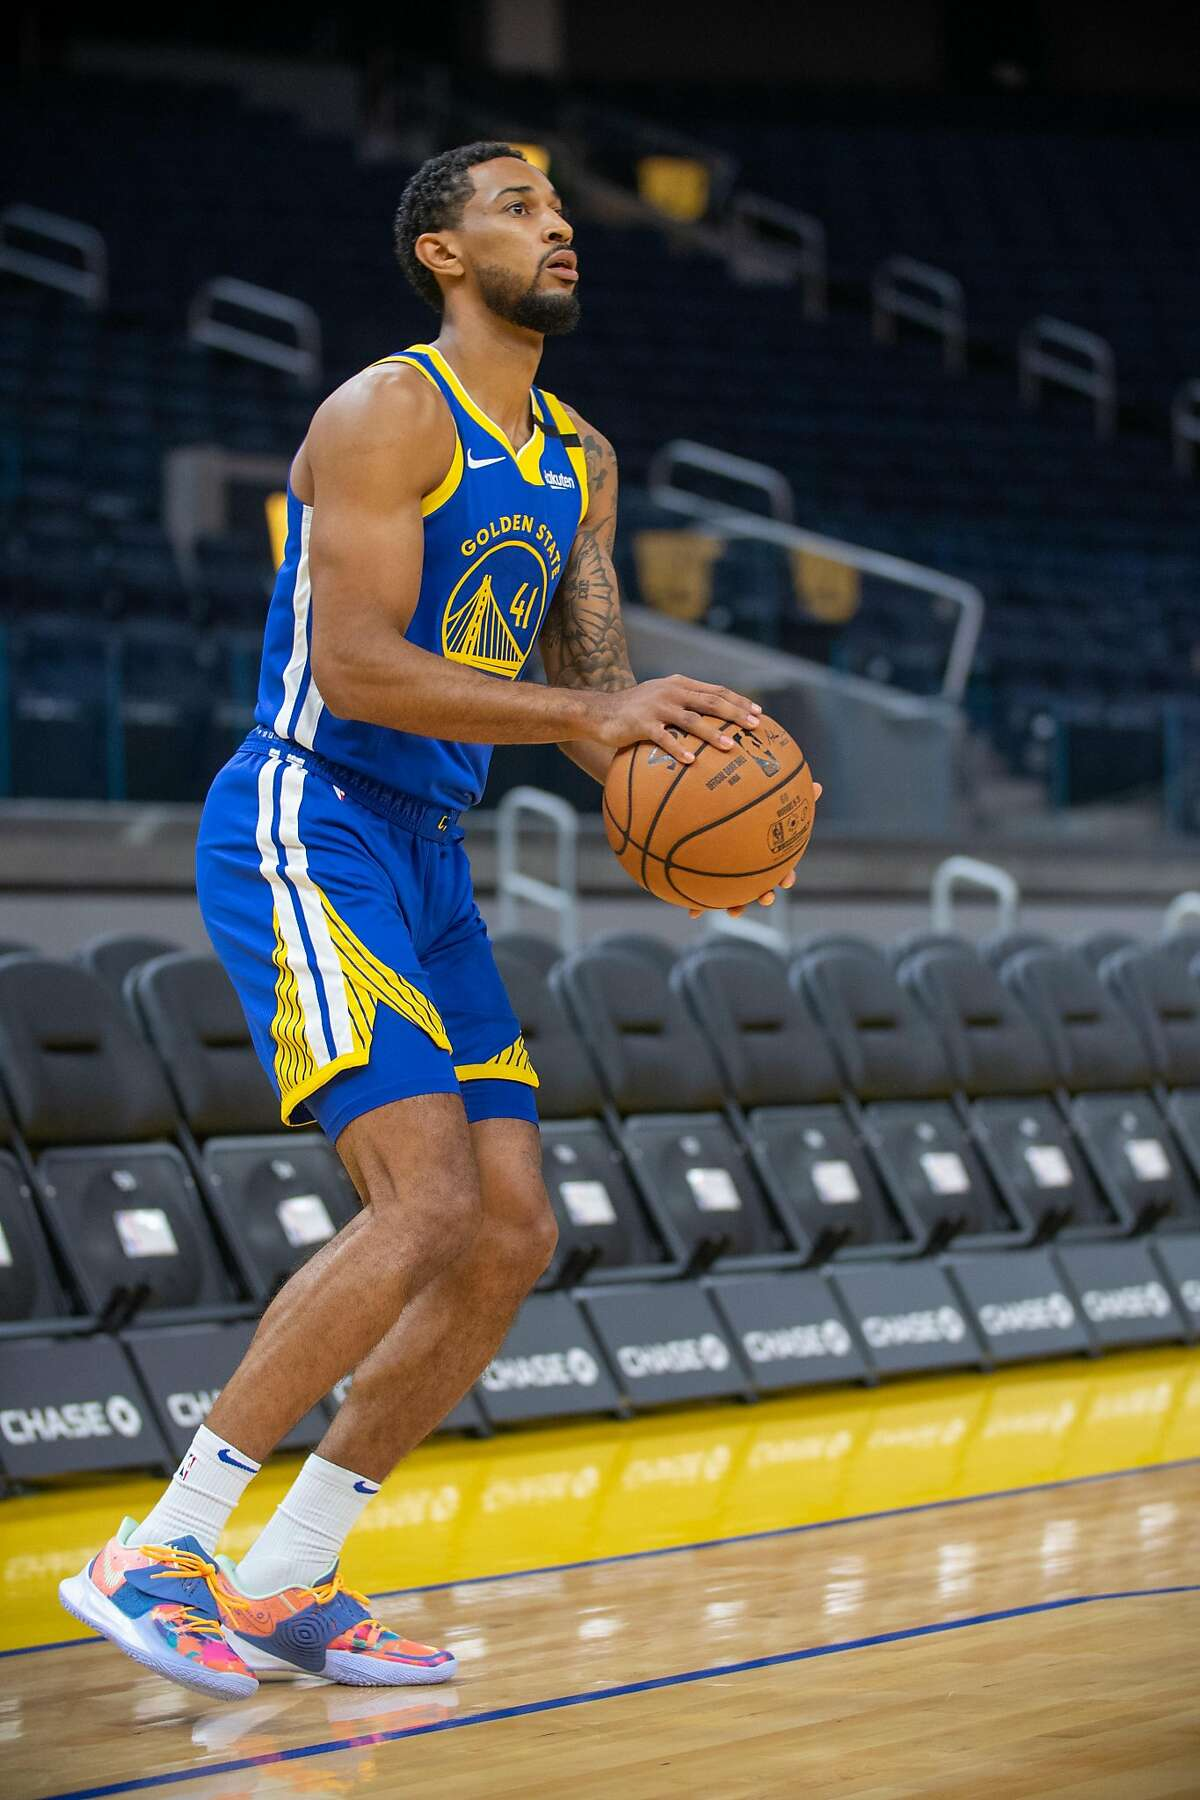 Guard Ryan Taylor scored 15 points in the Warriors' recent minicamp scrimmage at Chase Center.